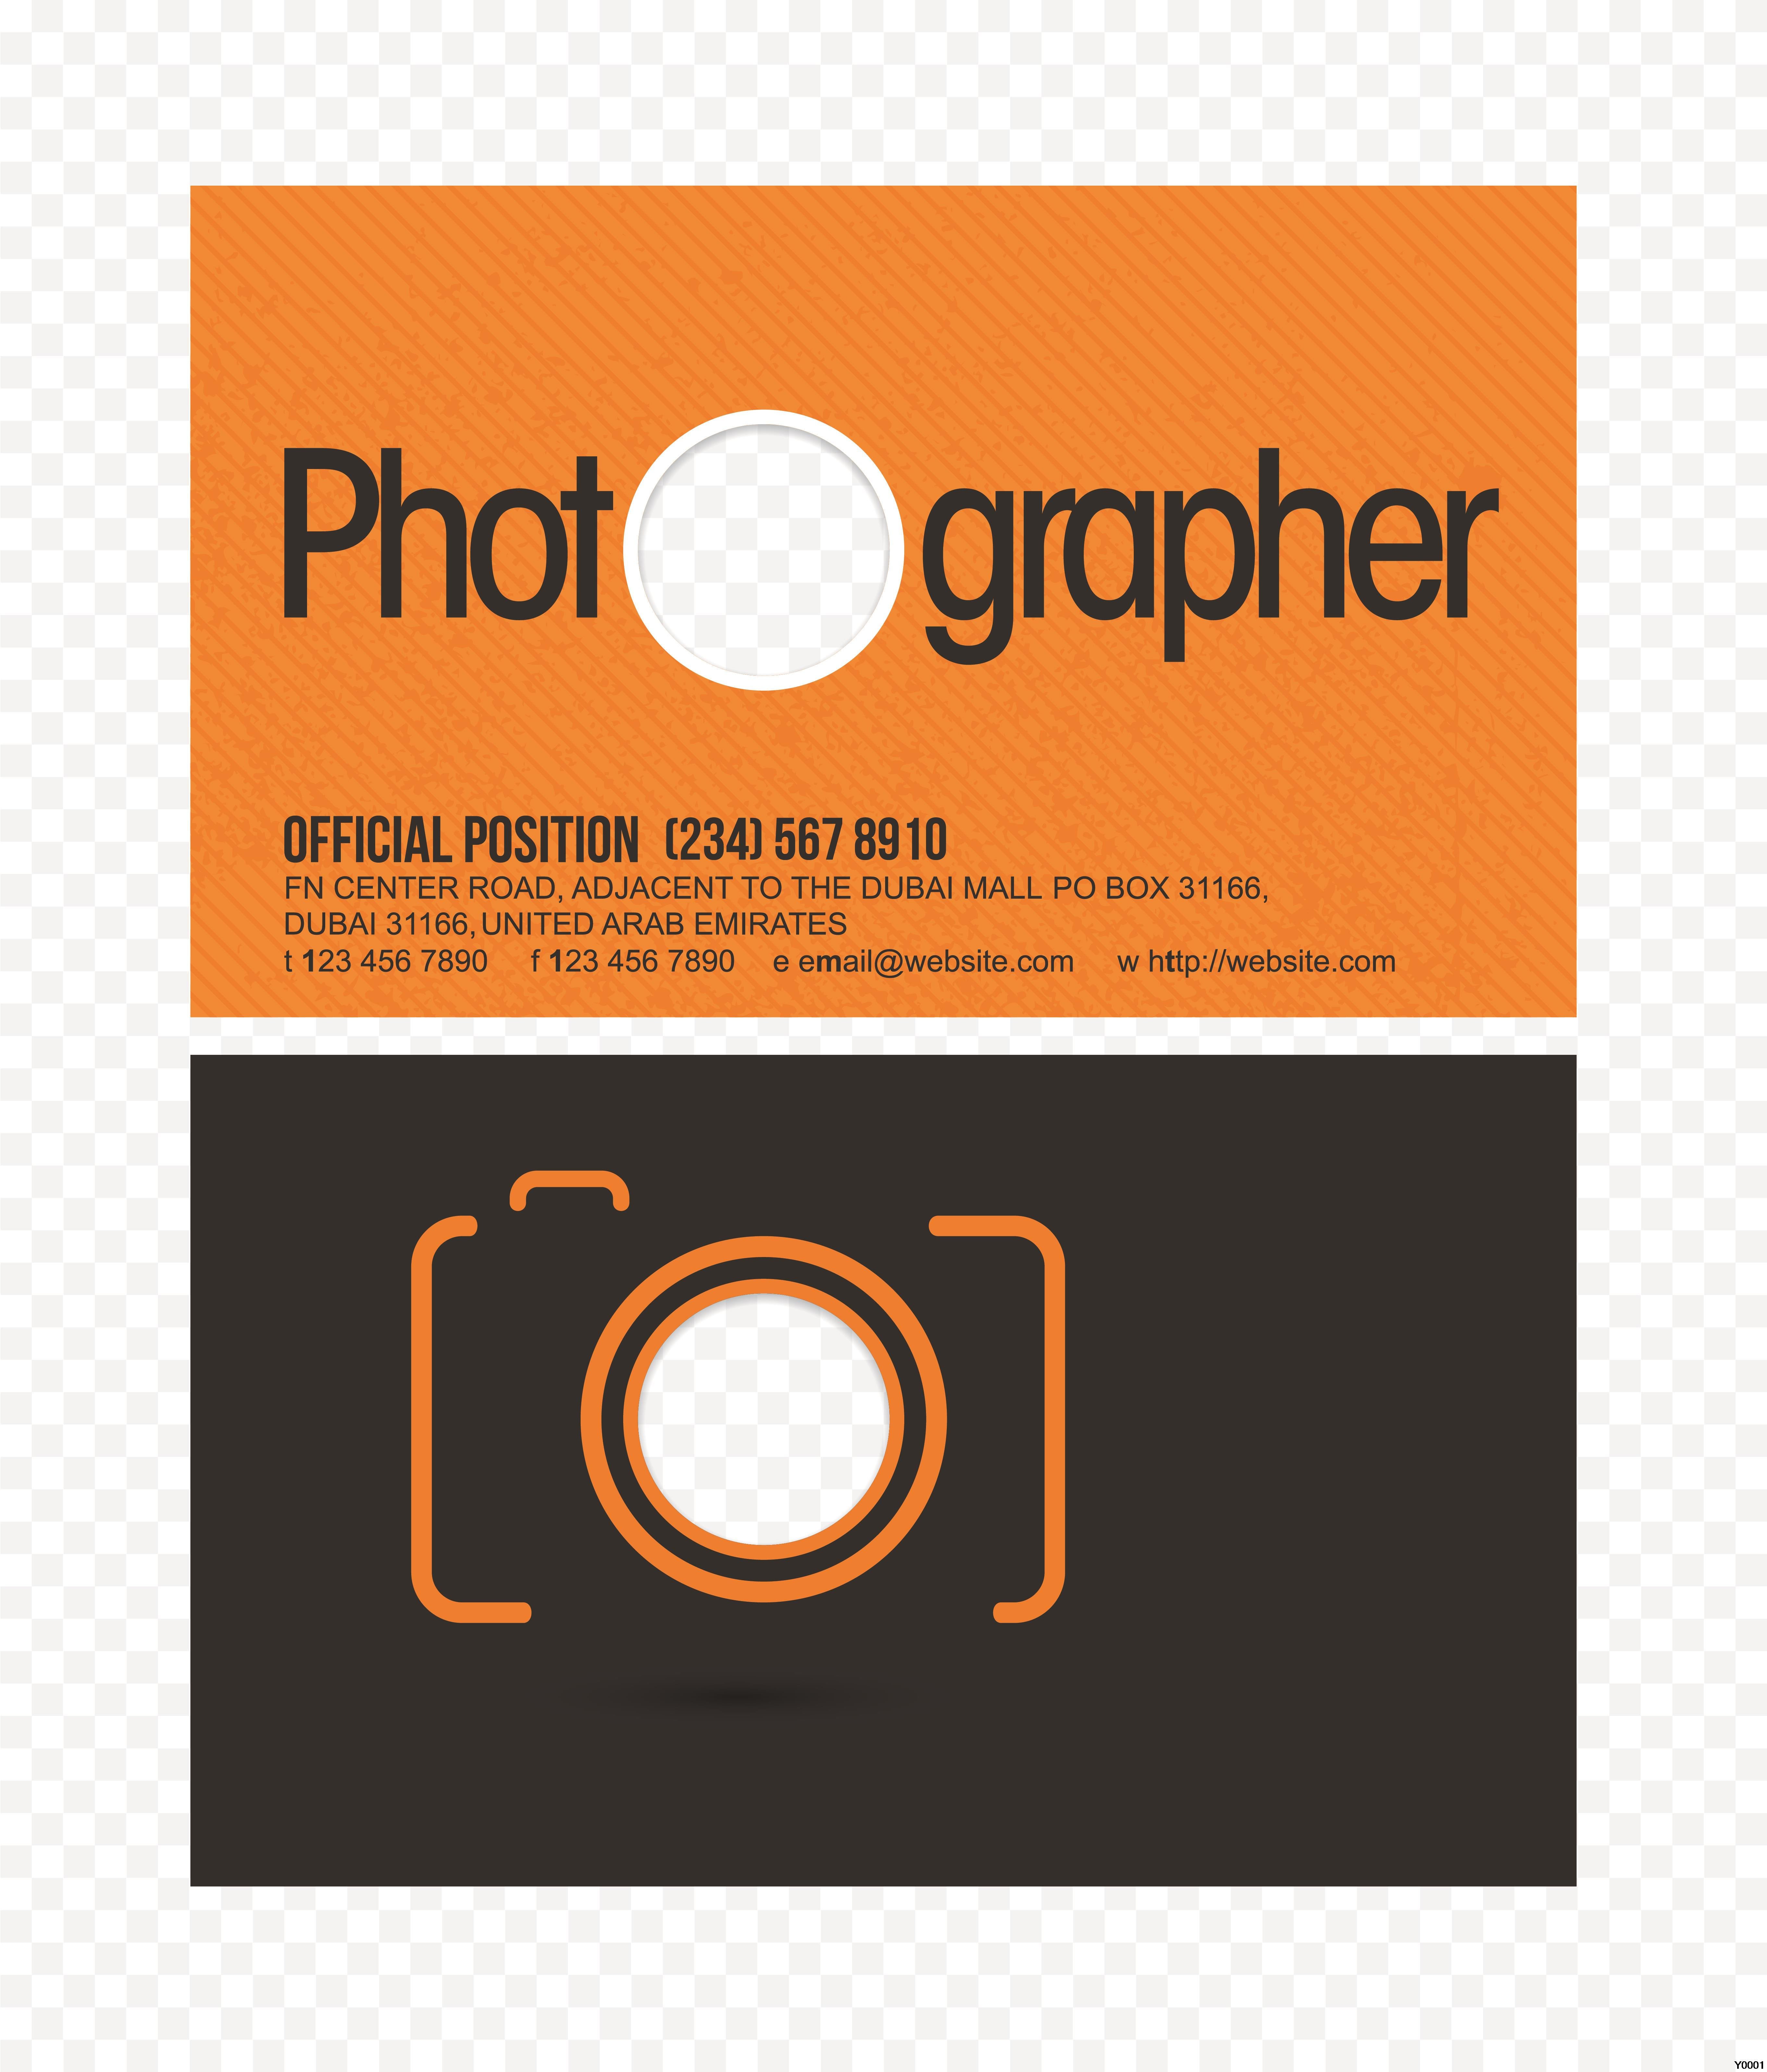 Photography business card template design for personal y0021 in photography business card template design for personal y0021 in business cards from office school supplies on aliexpress alibaba group wajeb Image collections